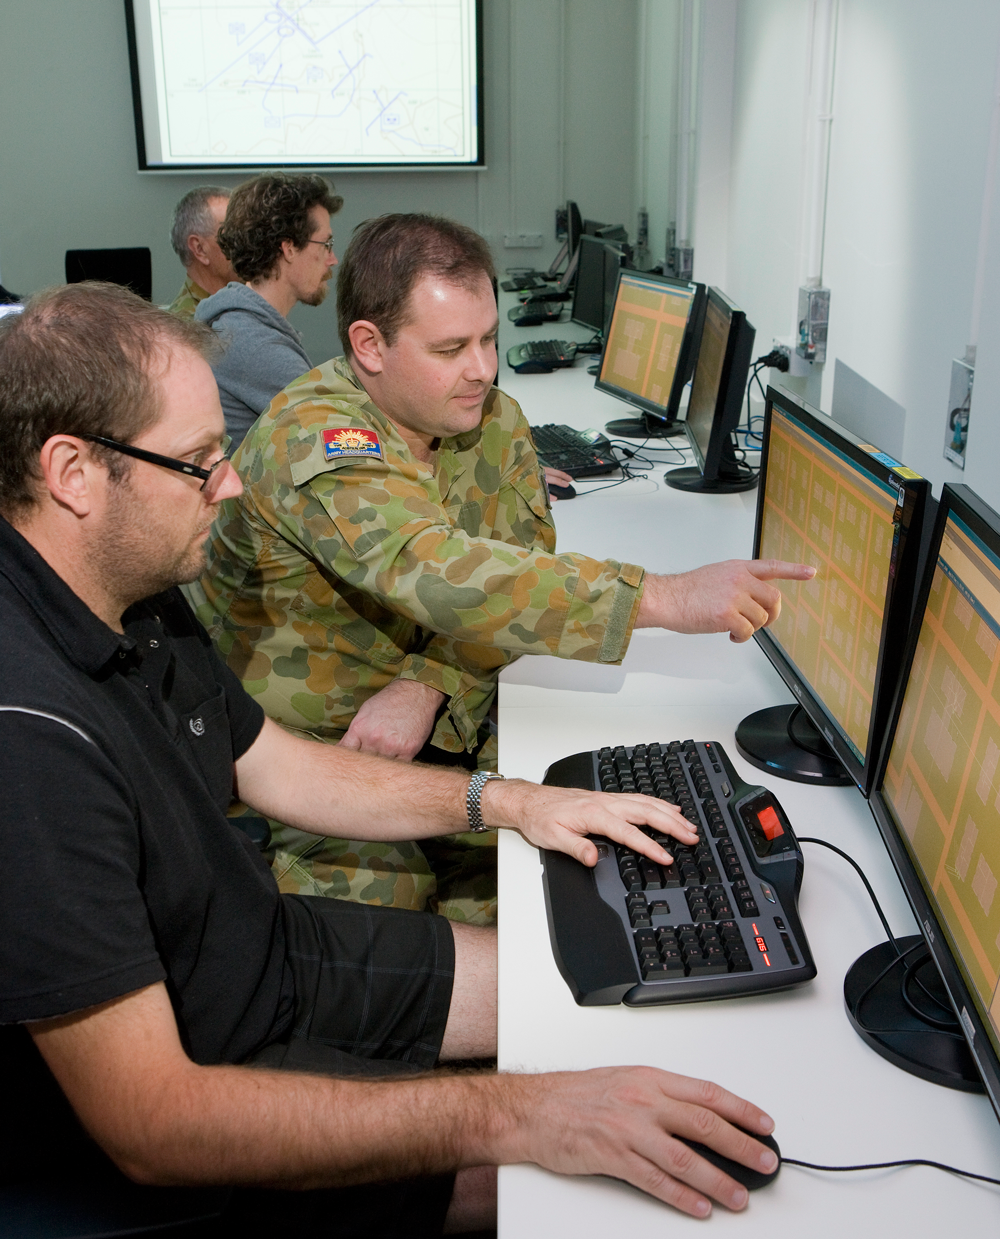 DSTO conducts wargaming and simulation studies for the ADF to provide insights into new tactics and procedures and to assist in capability development.